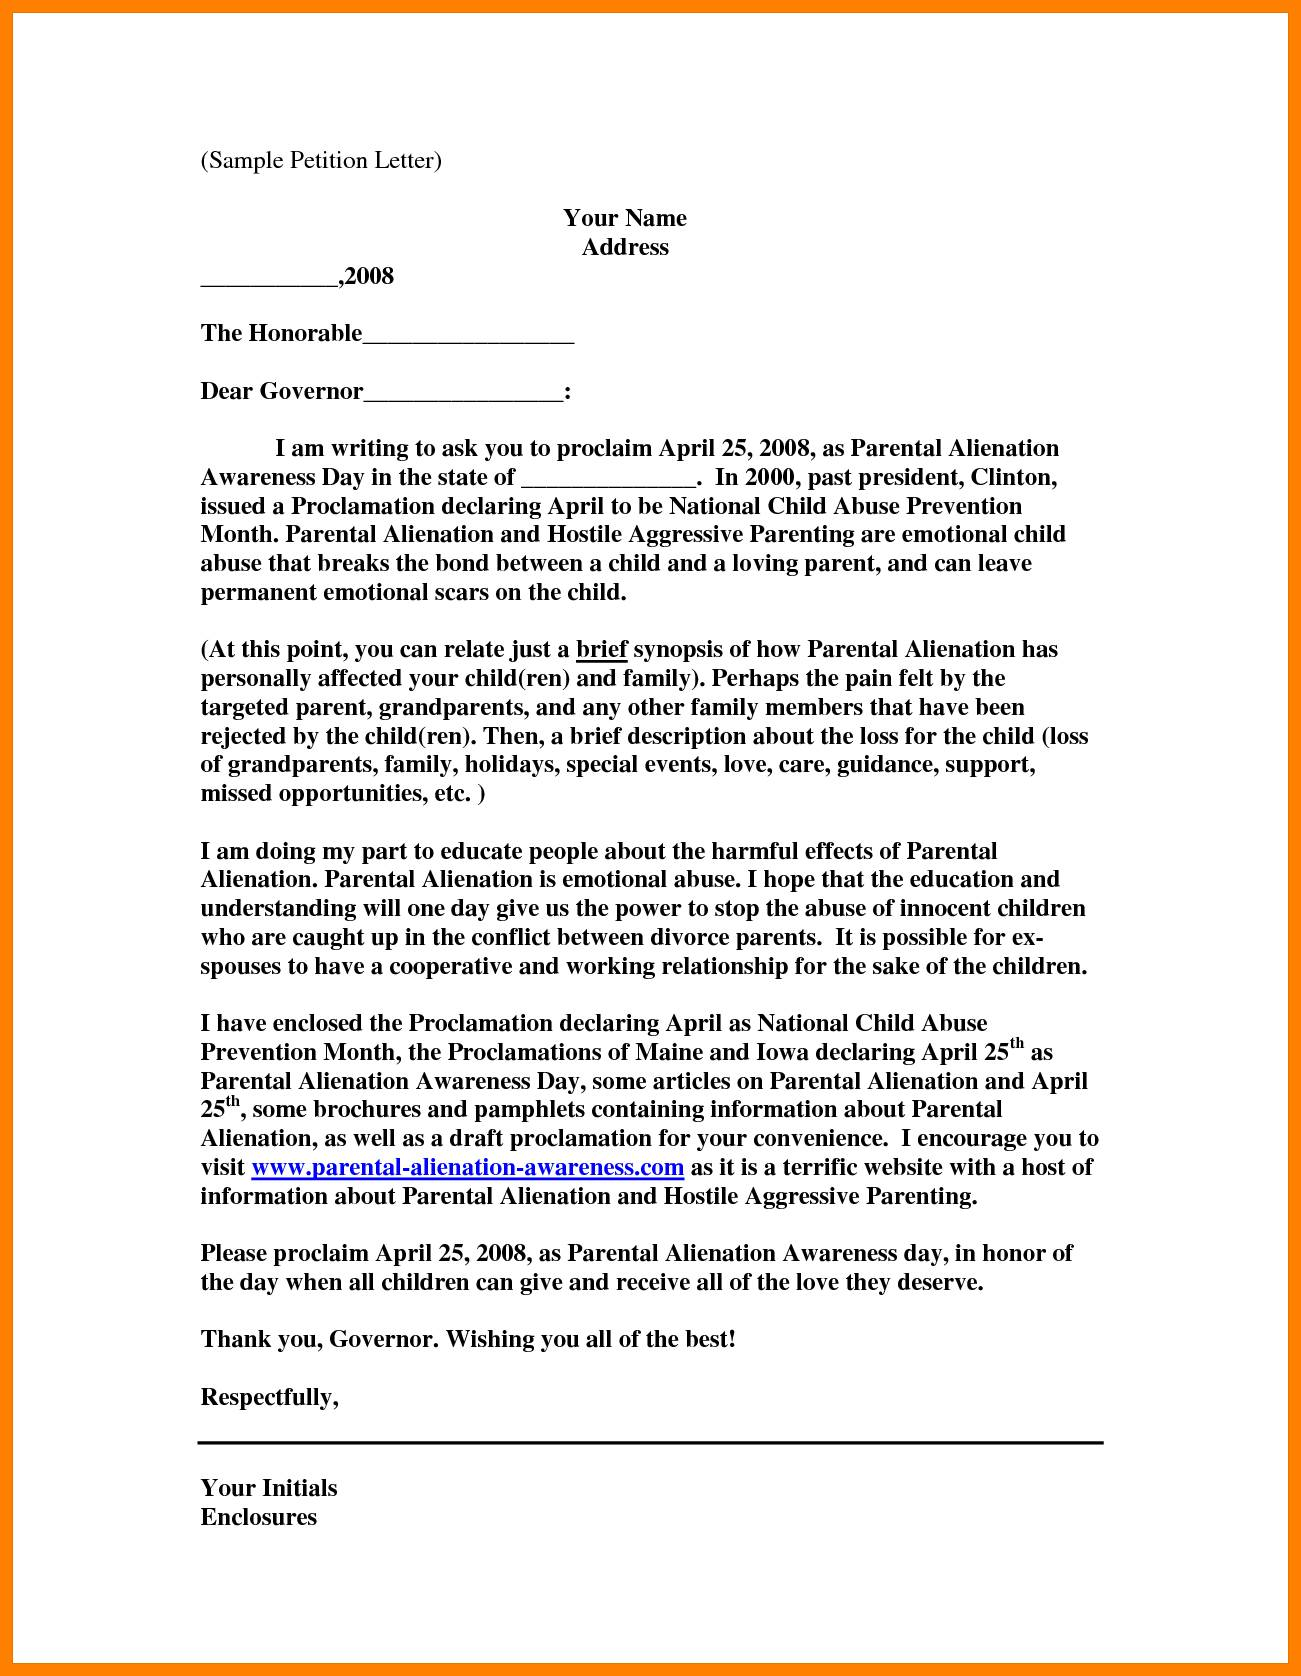 Sample Petition Letter Template